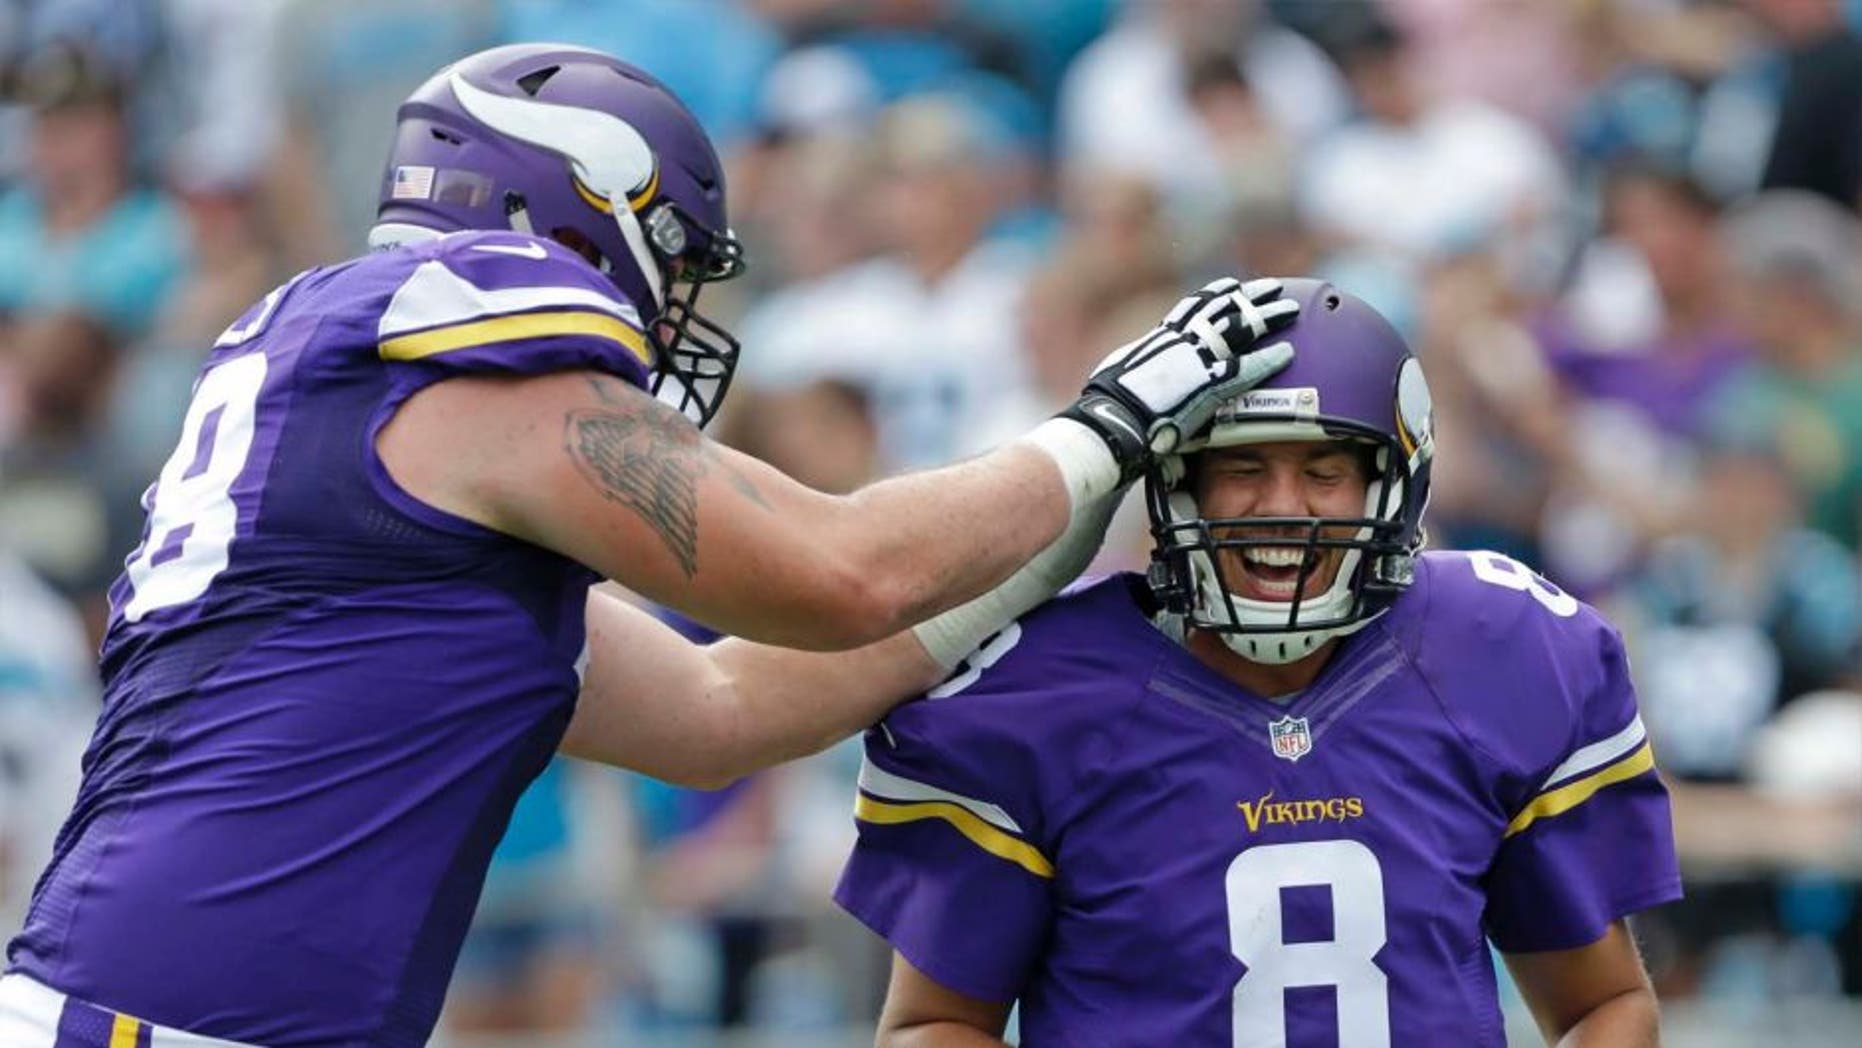 The Minnesota Vikings' Sam Bradford (right) is congratulated by Jeremiah Sirles after touchdown pass against the Carolina Panthers in the second half in Charlotte, N.C., Sunday, Sept. 25, 2016.